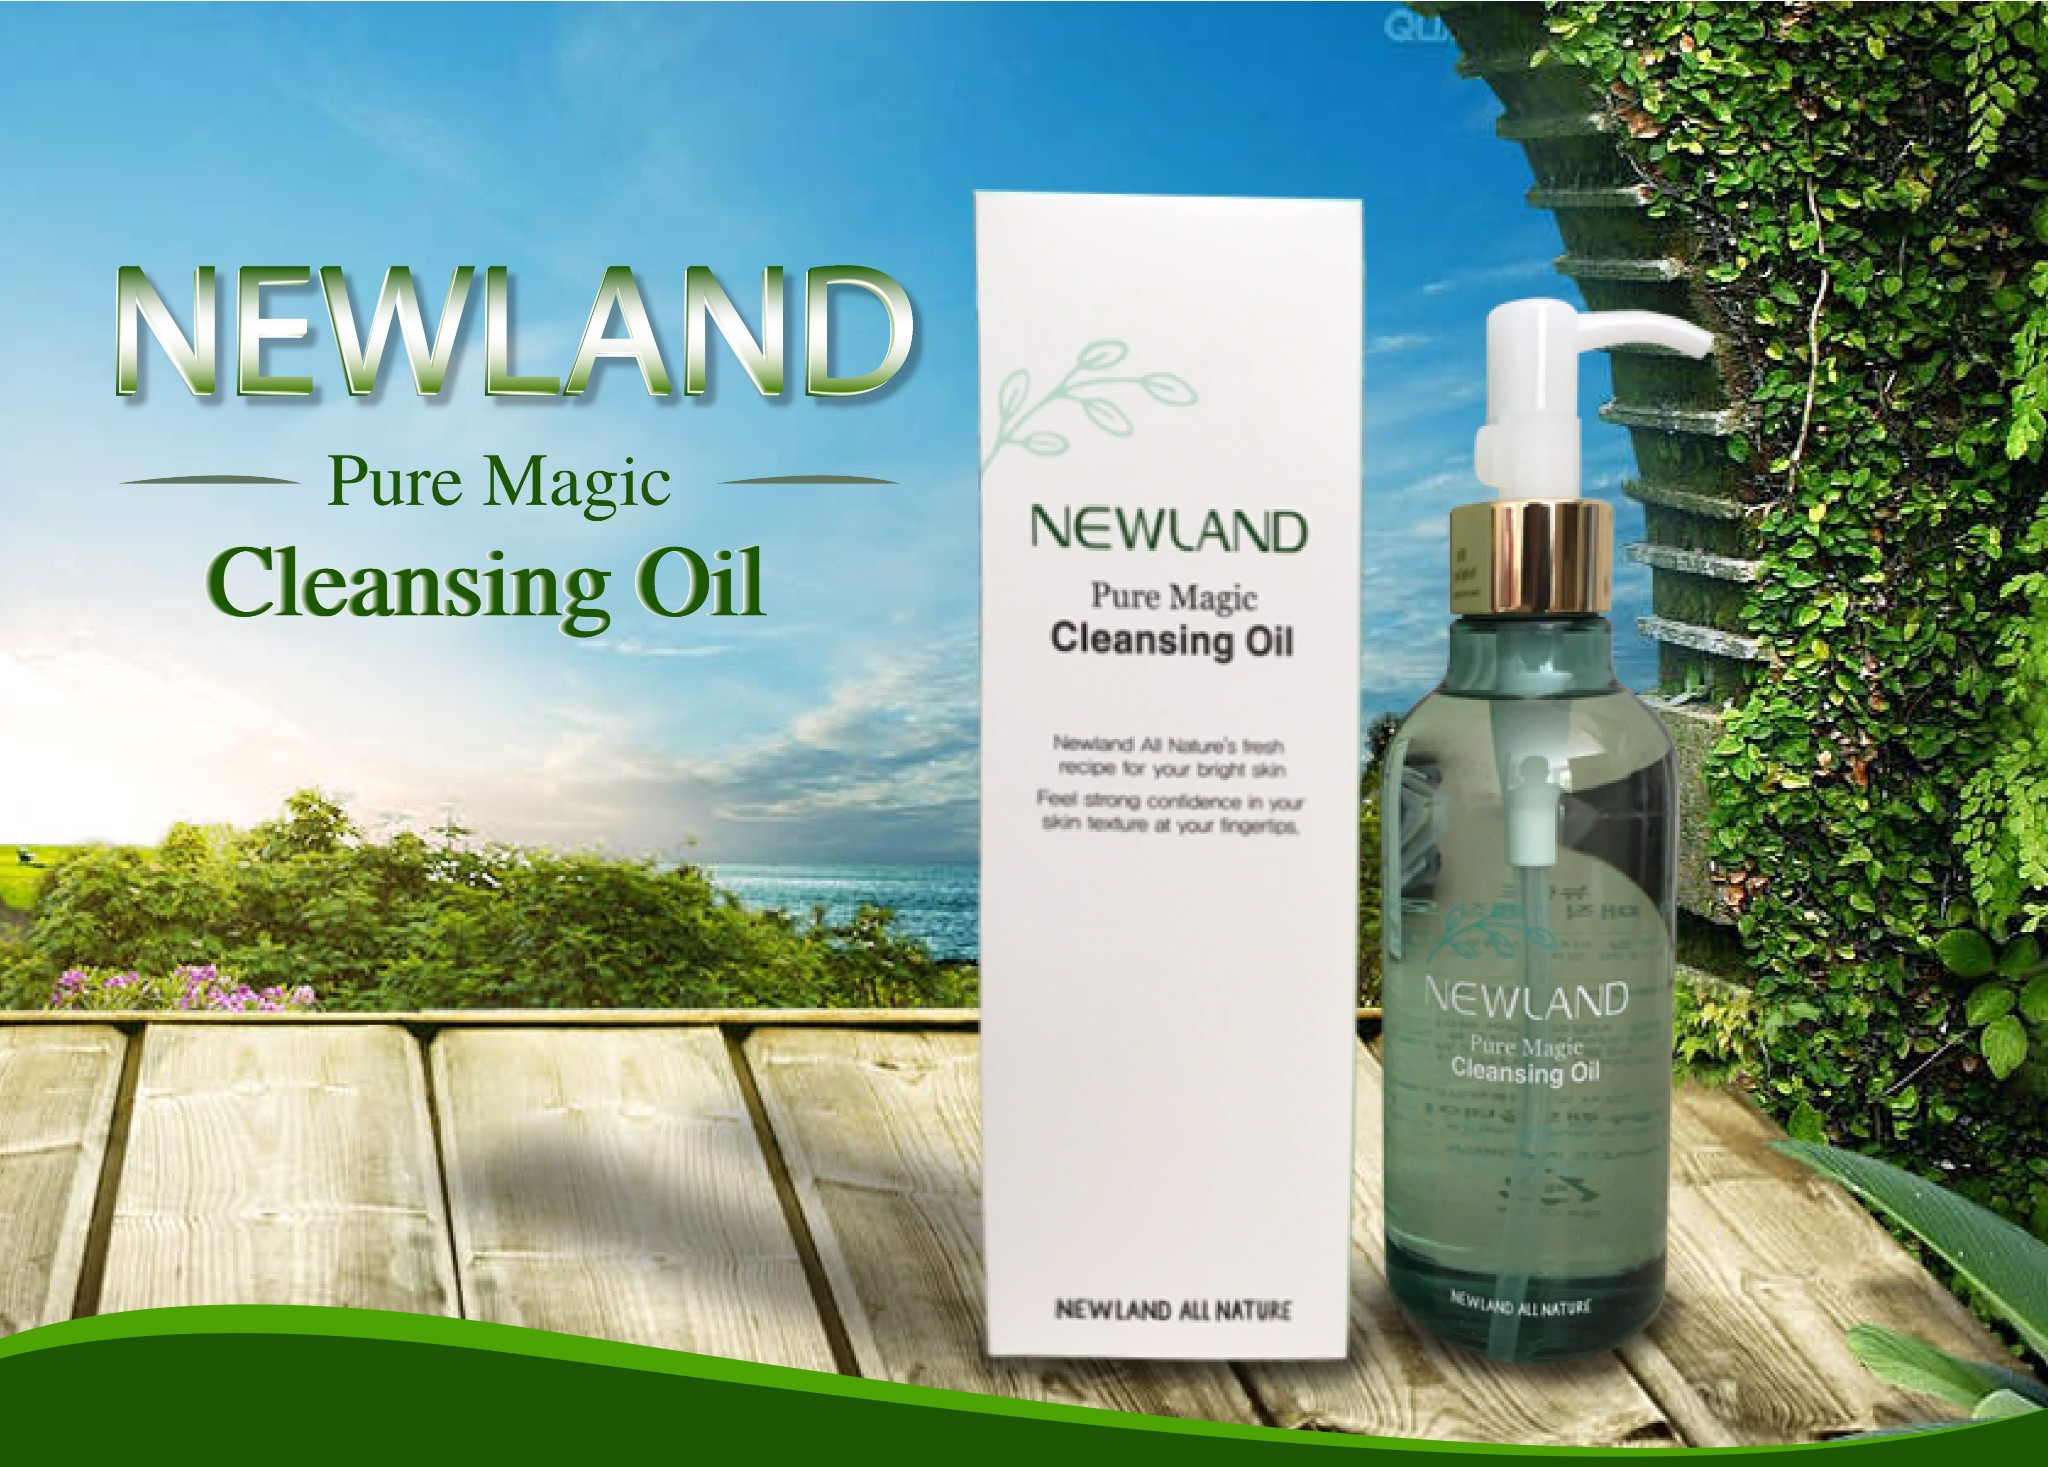 Dầu Tẩy Trang Newland Pure Magic Cleansing Oil